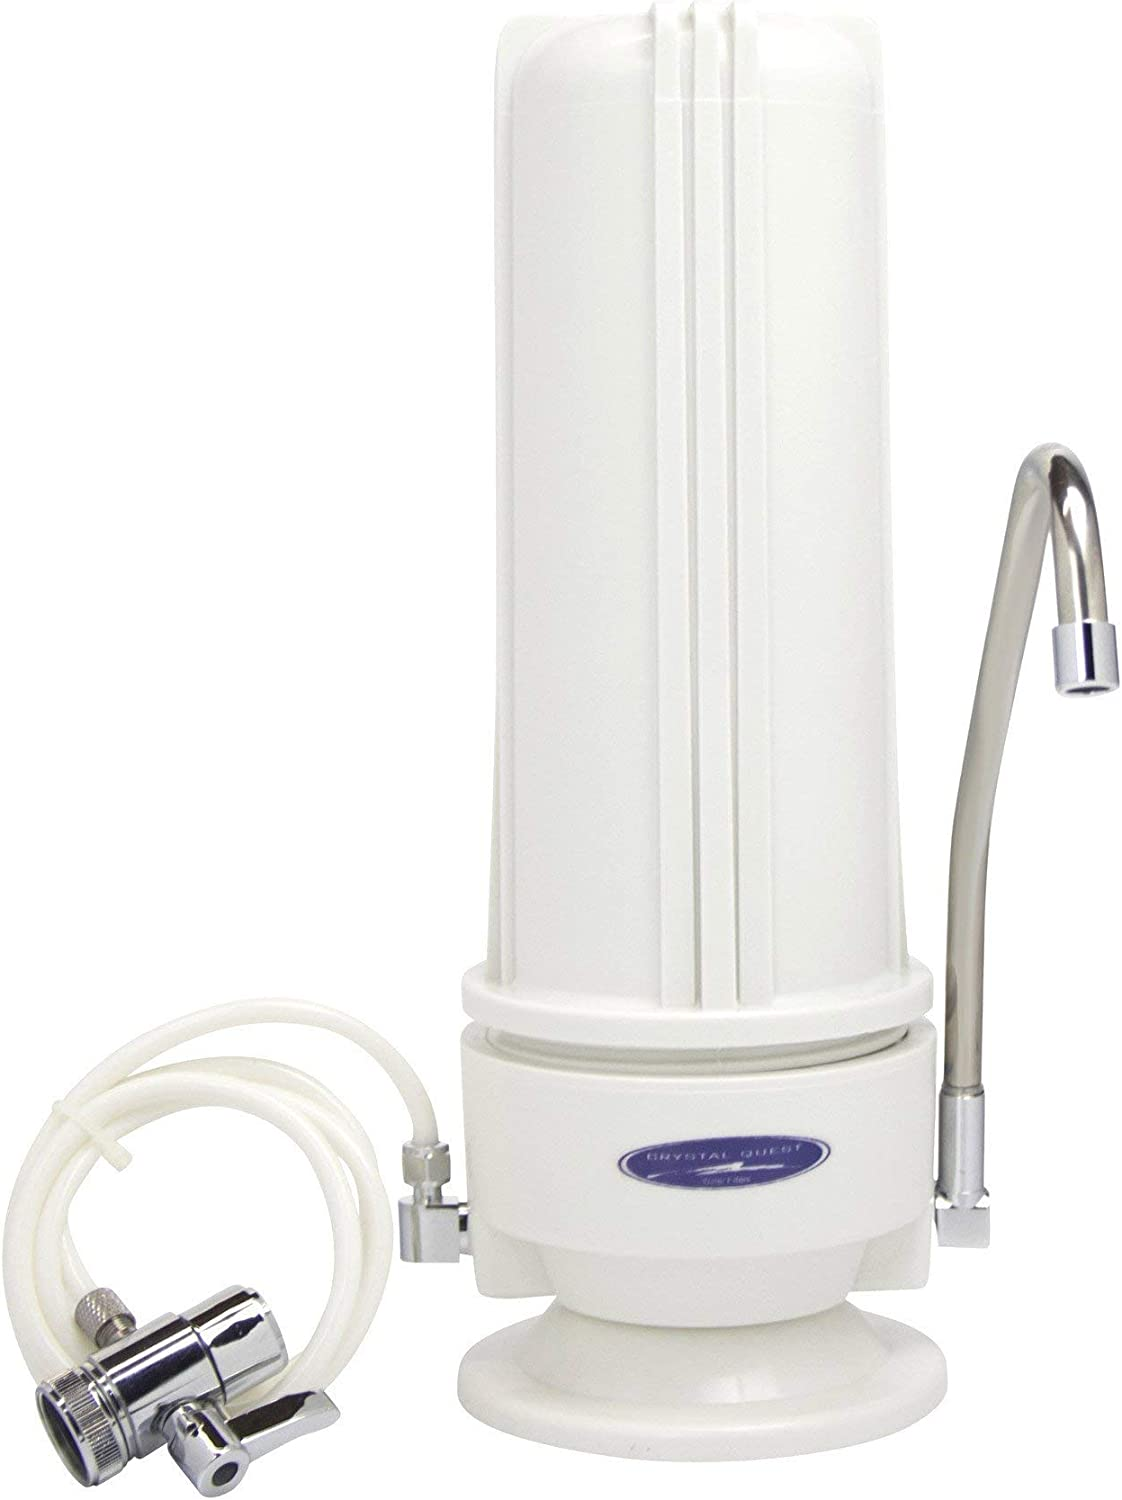 Smart Single Cartridge Countertop Water Filter System Crystal Quest Fluoride Removal